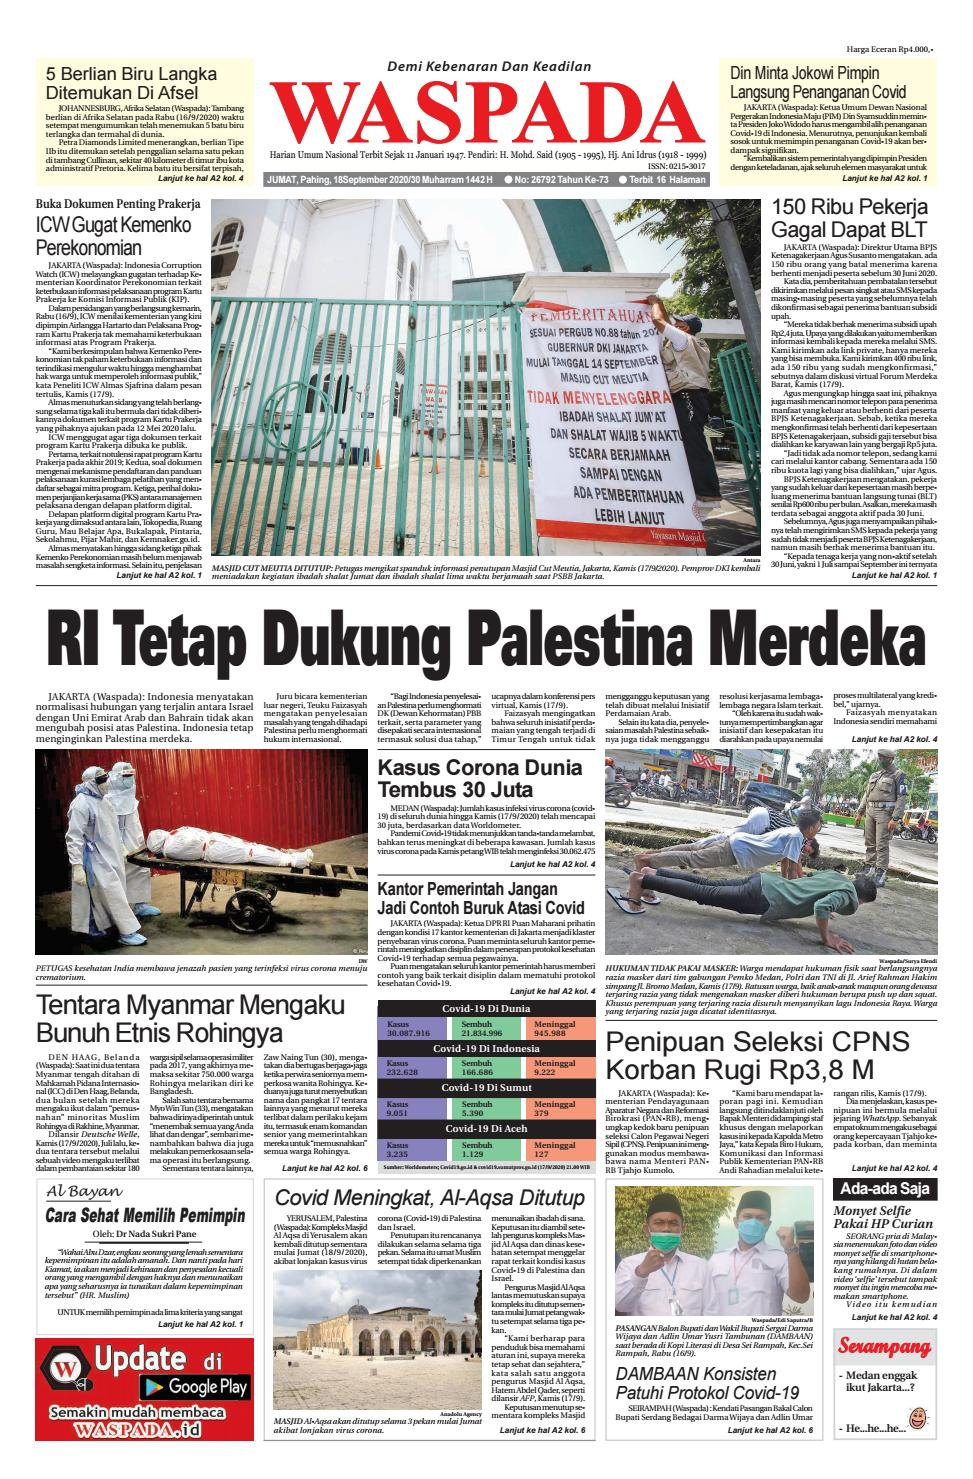 Waspada Jumat 18 September 2020 By Harian Waspada Issuu